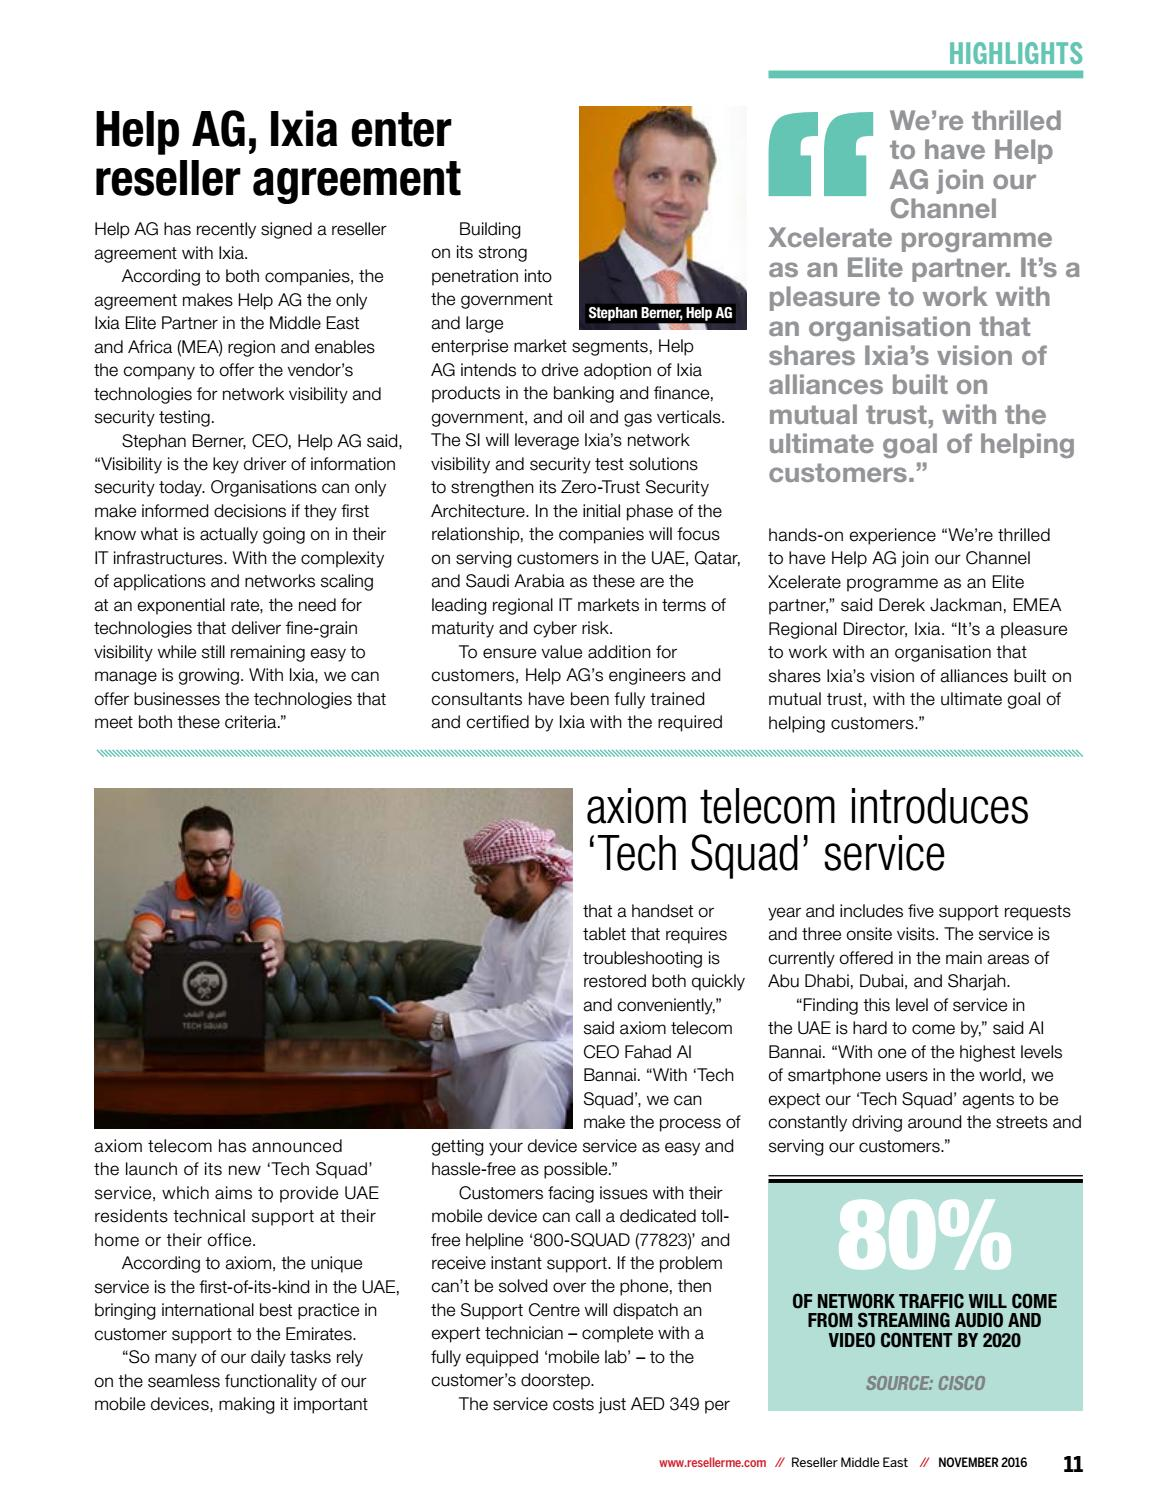 Reseller Middle East November 2016 by Reseller Middle East - issuu